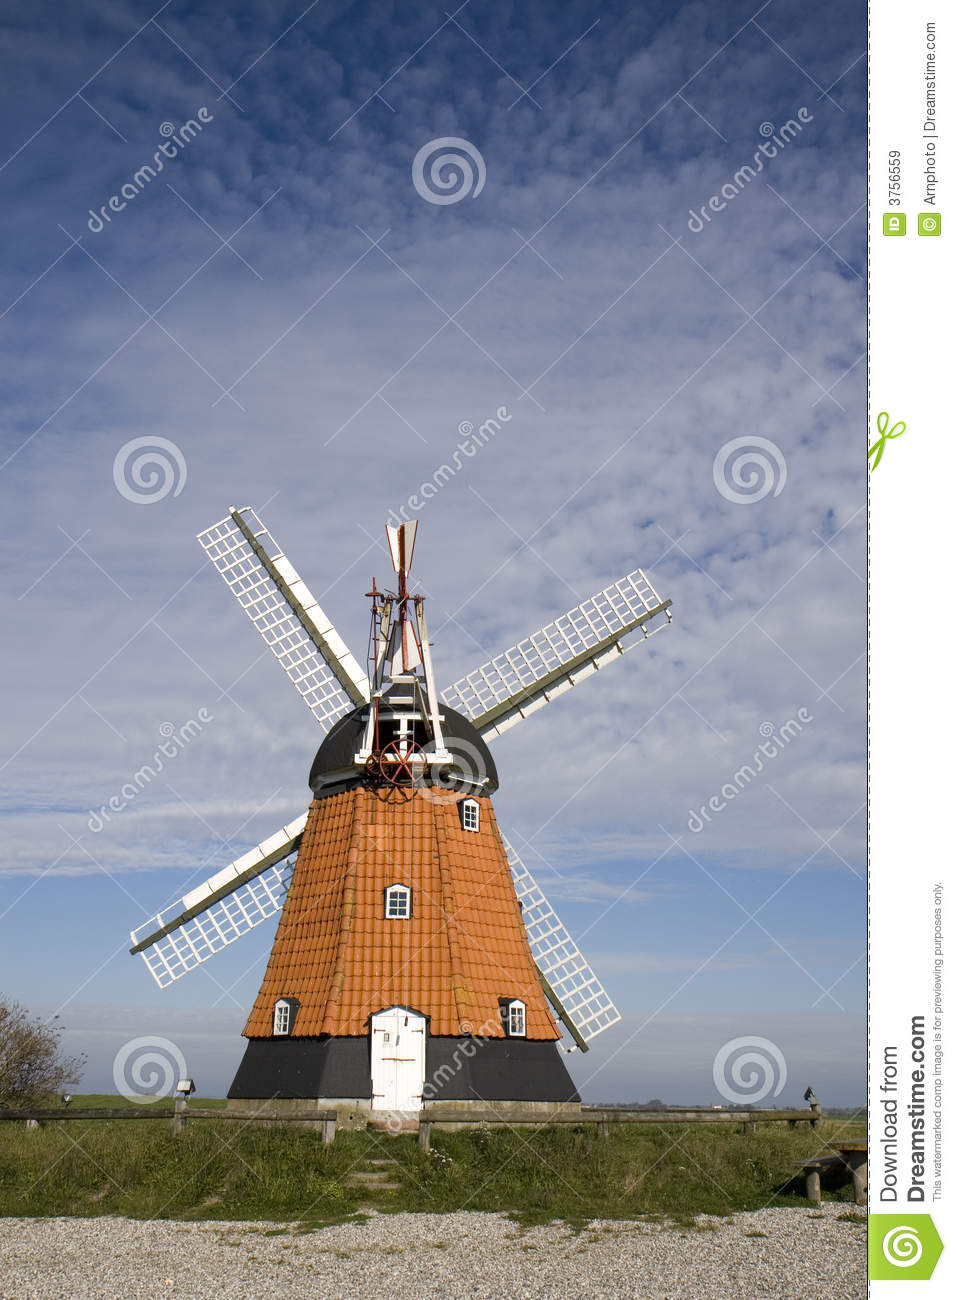 Old Windmill Royalty Free Stock Images - Image: 3756559